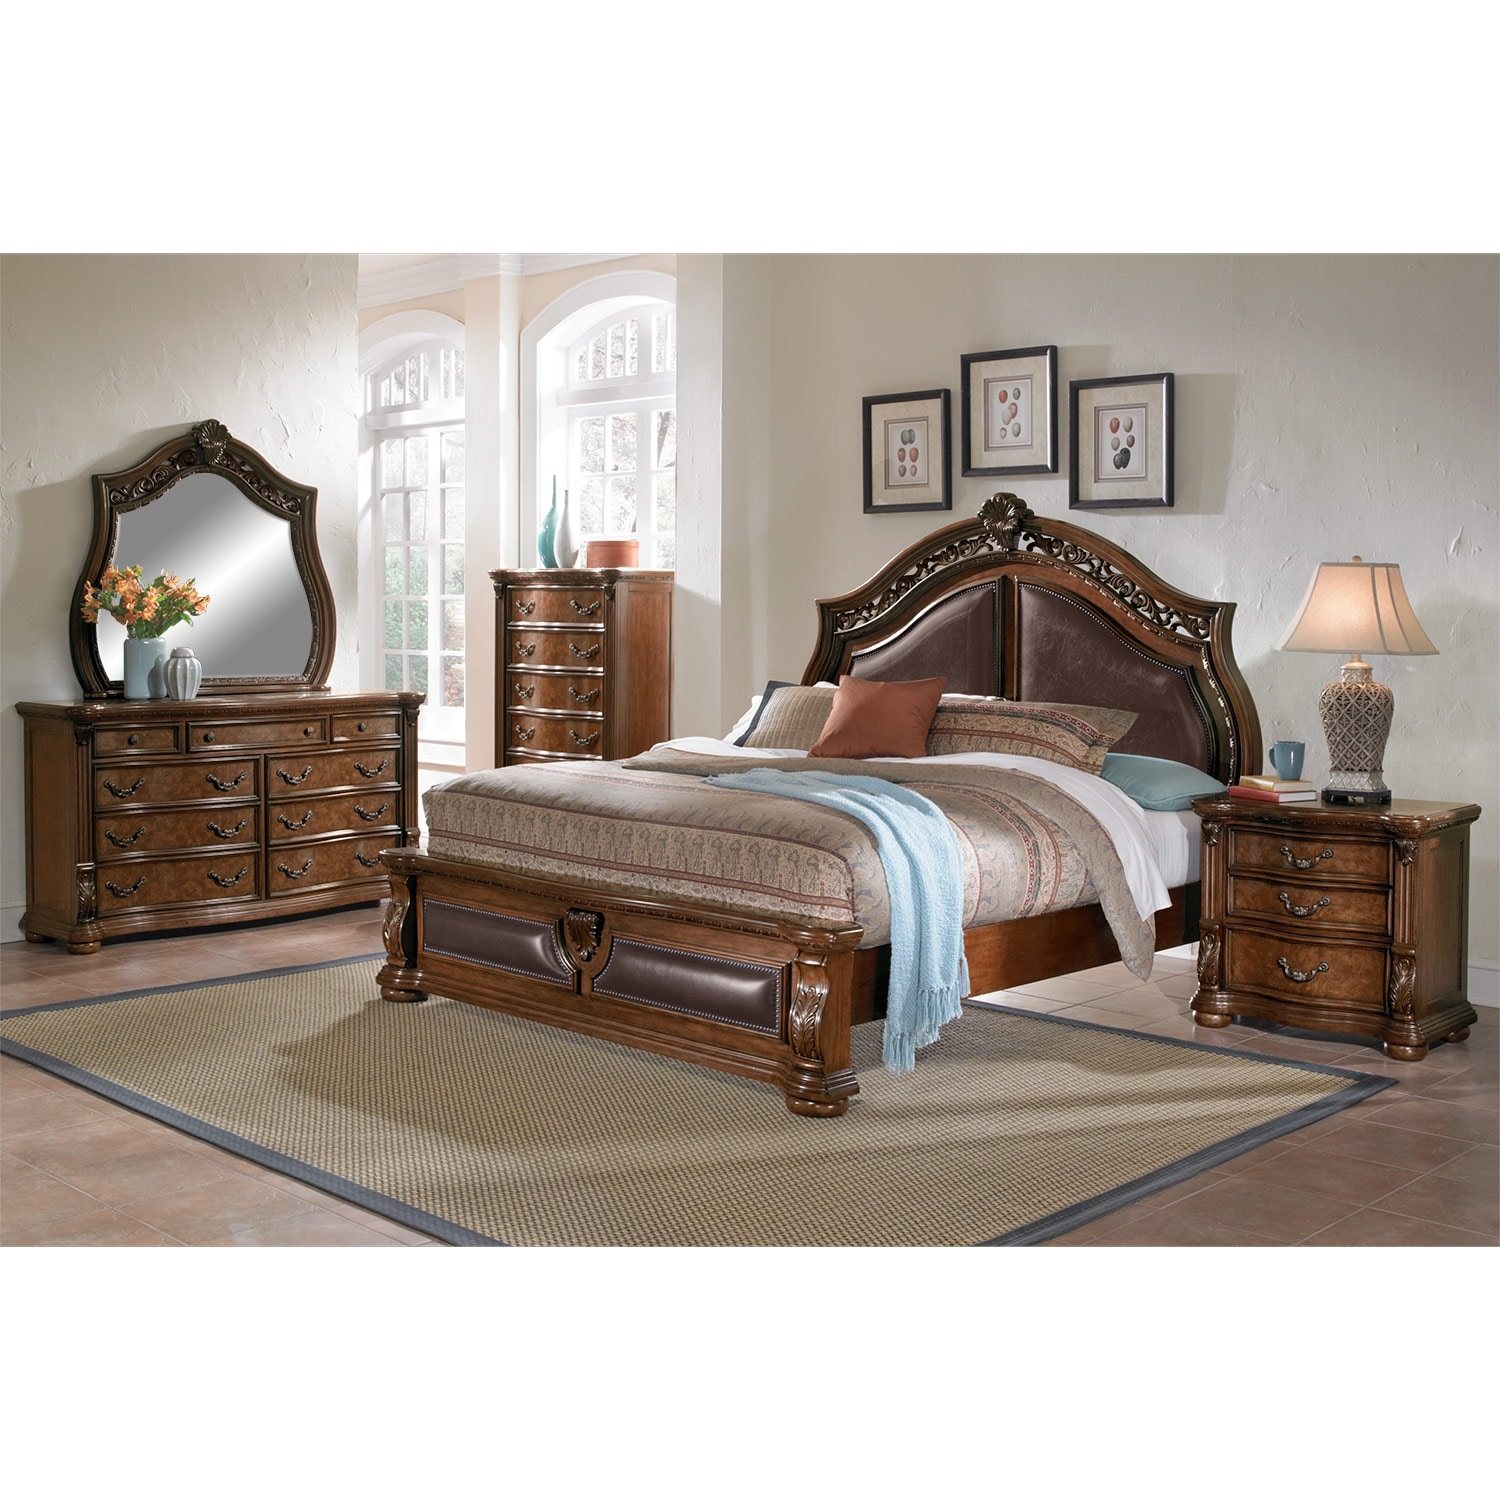 Morocco King Bed American Signature Furniture